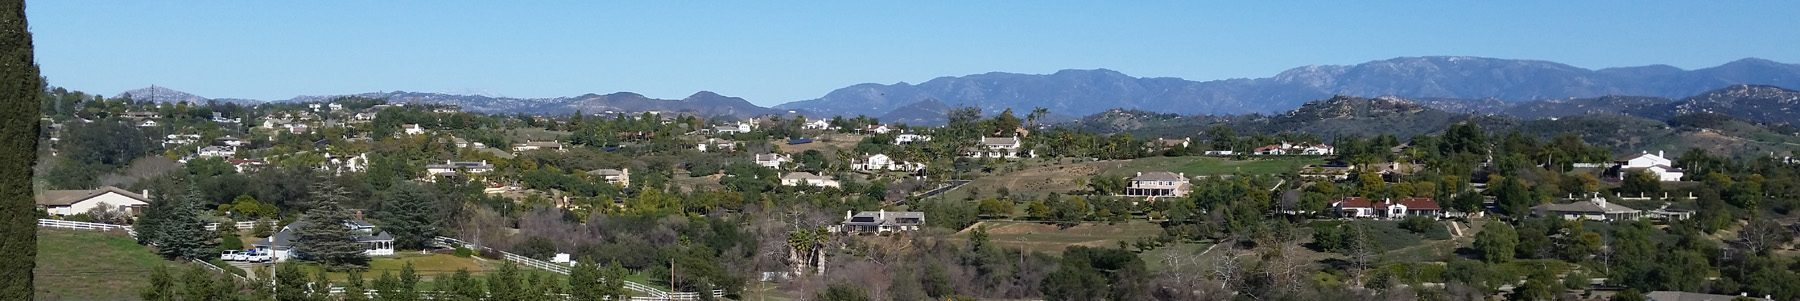 Hills of Fallbrook. Fallbrook New homes and real estate